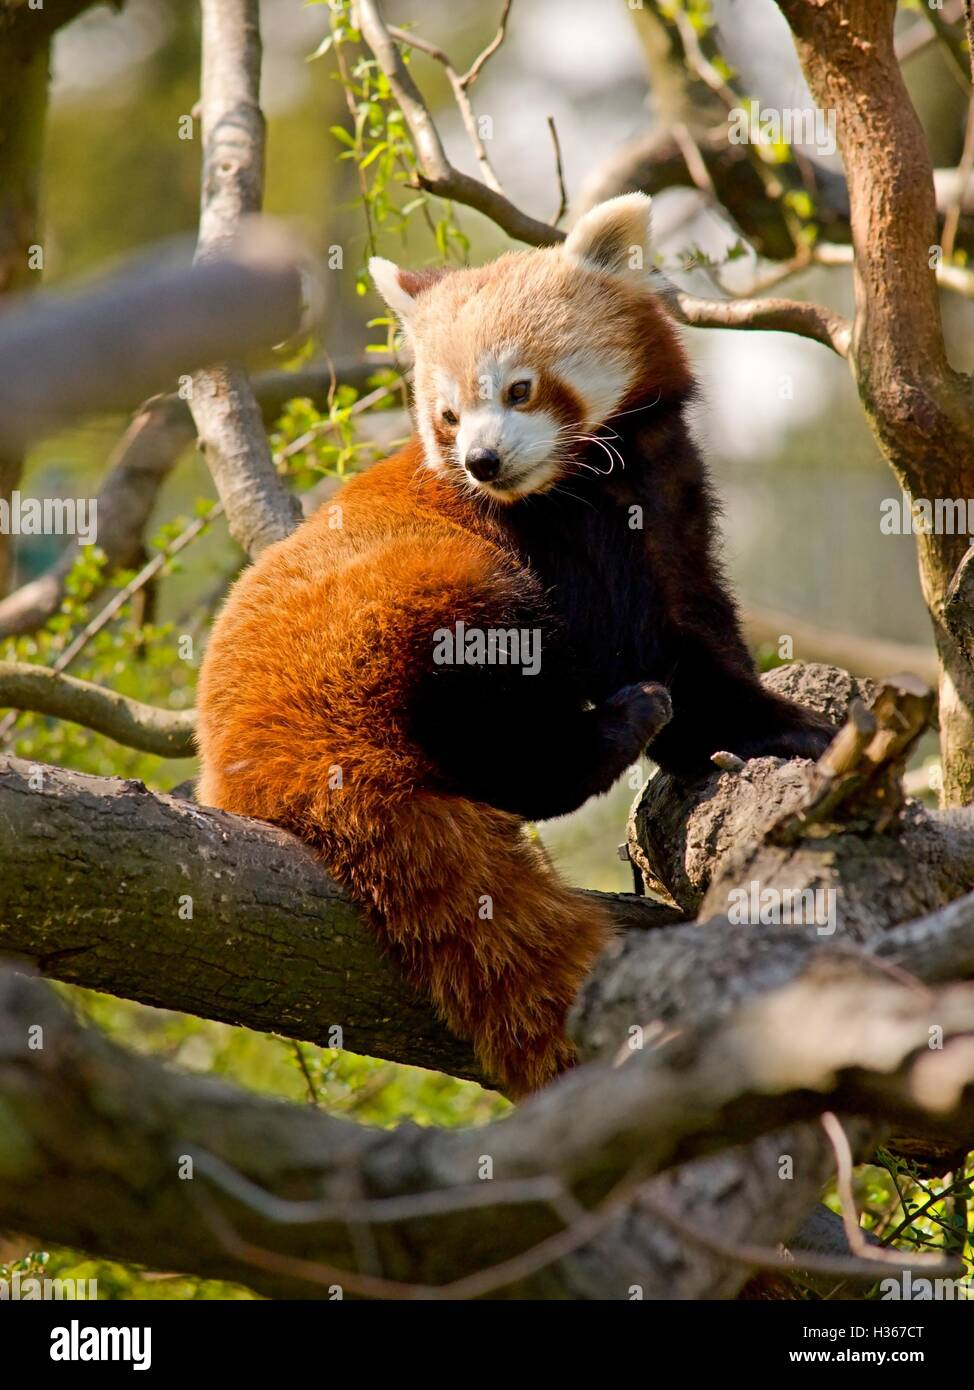 Cute red panda is sitting in the branches - Stock Image